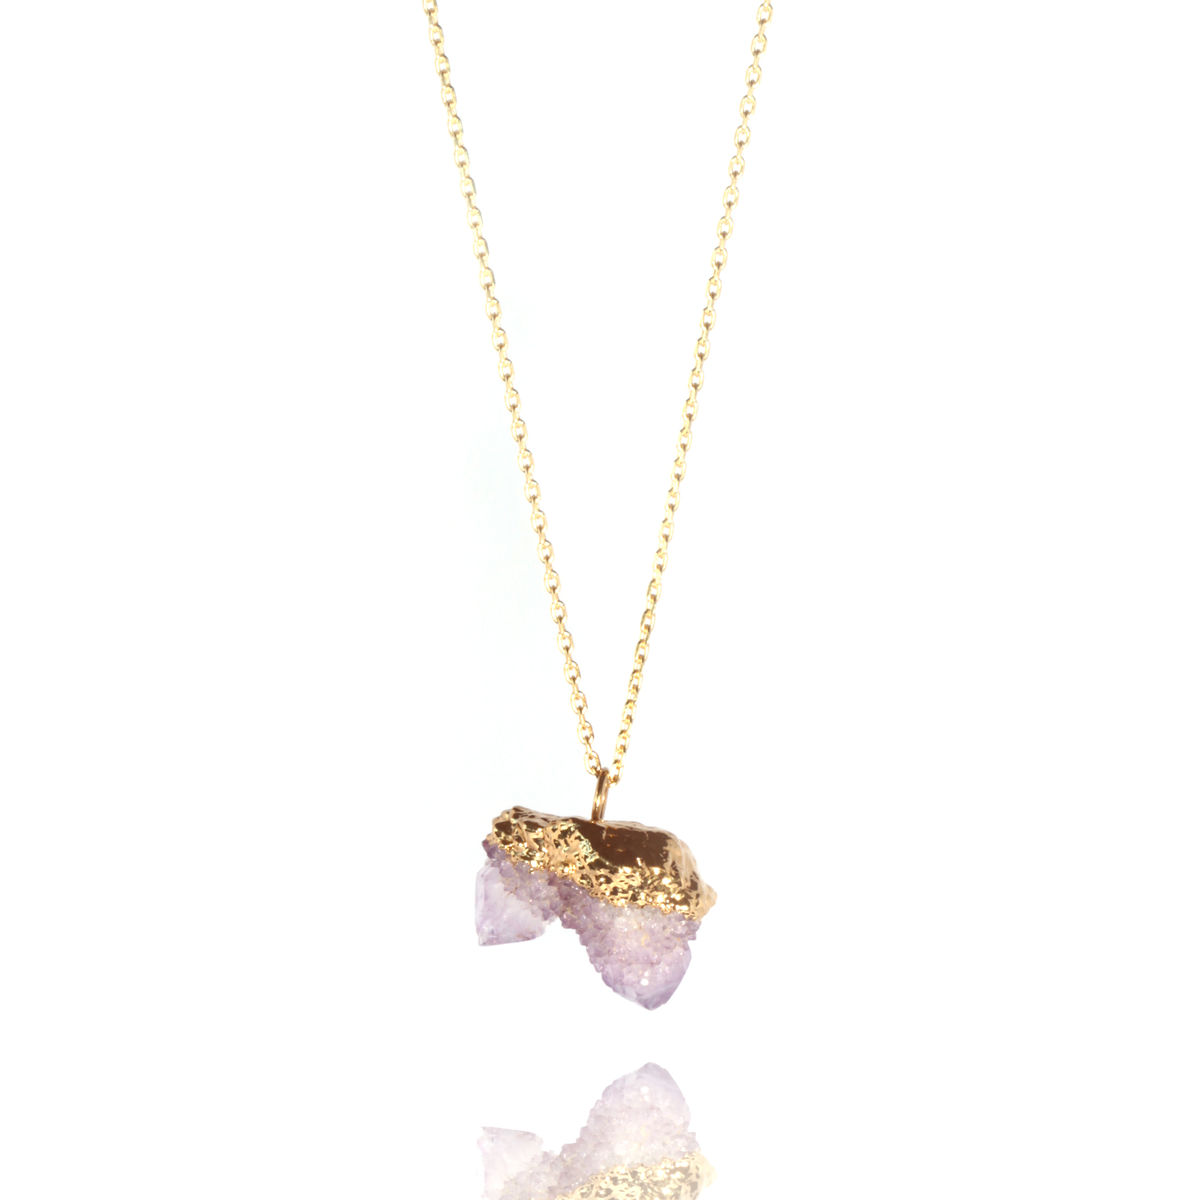 Amethyst spirit quartz and 22ct yellow gold pendant - product image